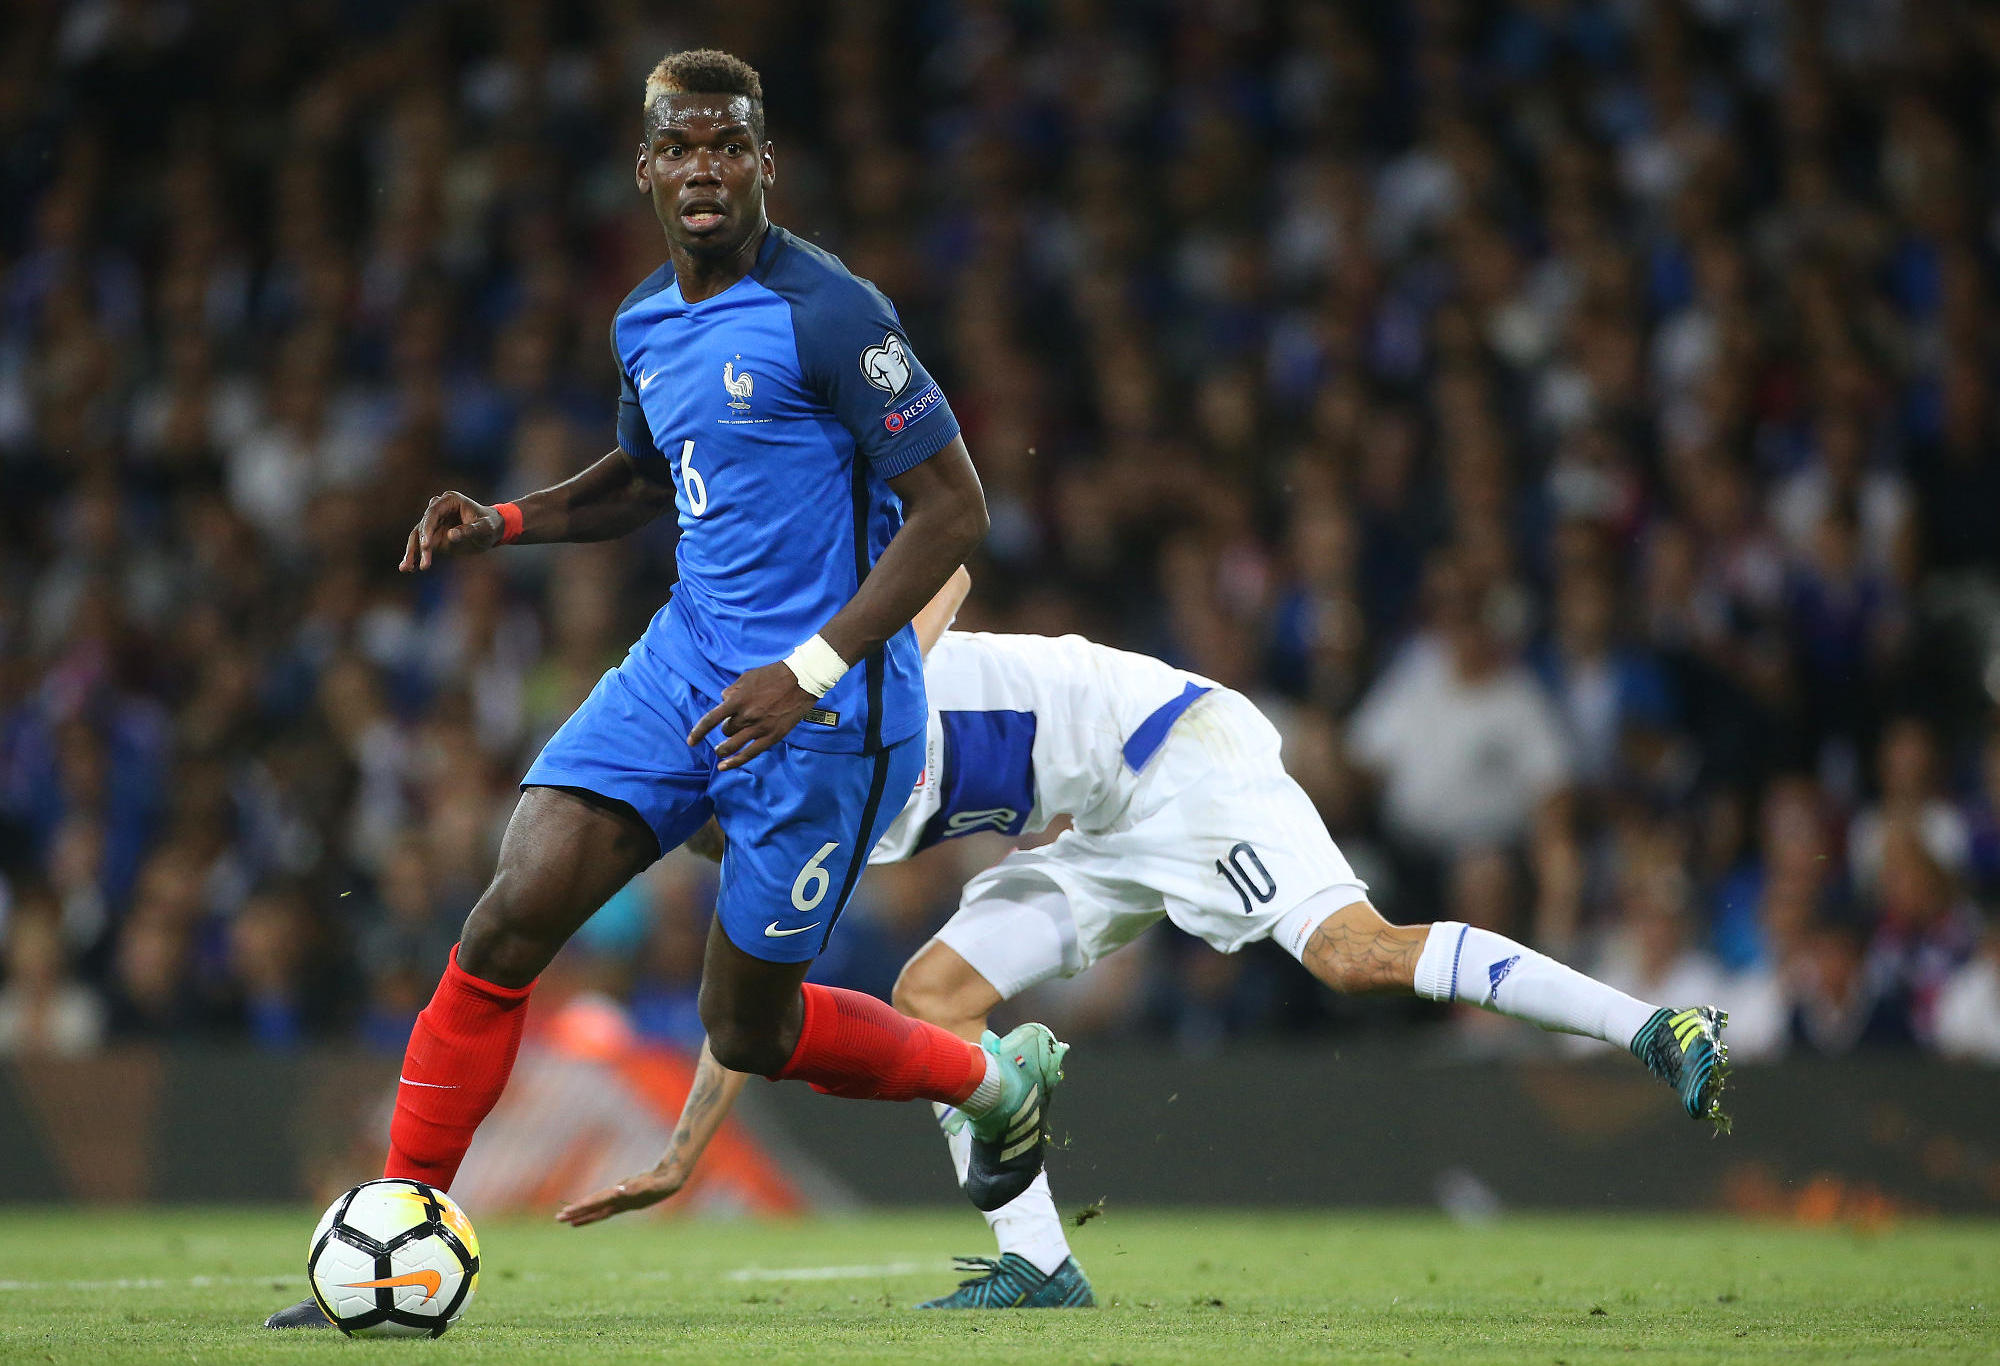 France's Paul Pogba gets past a defender.